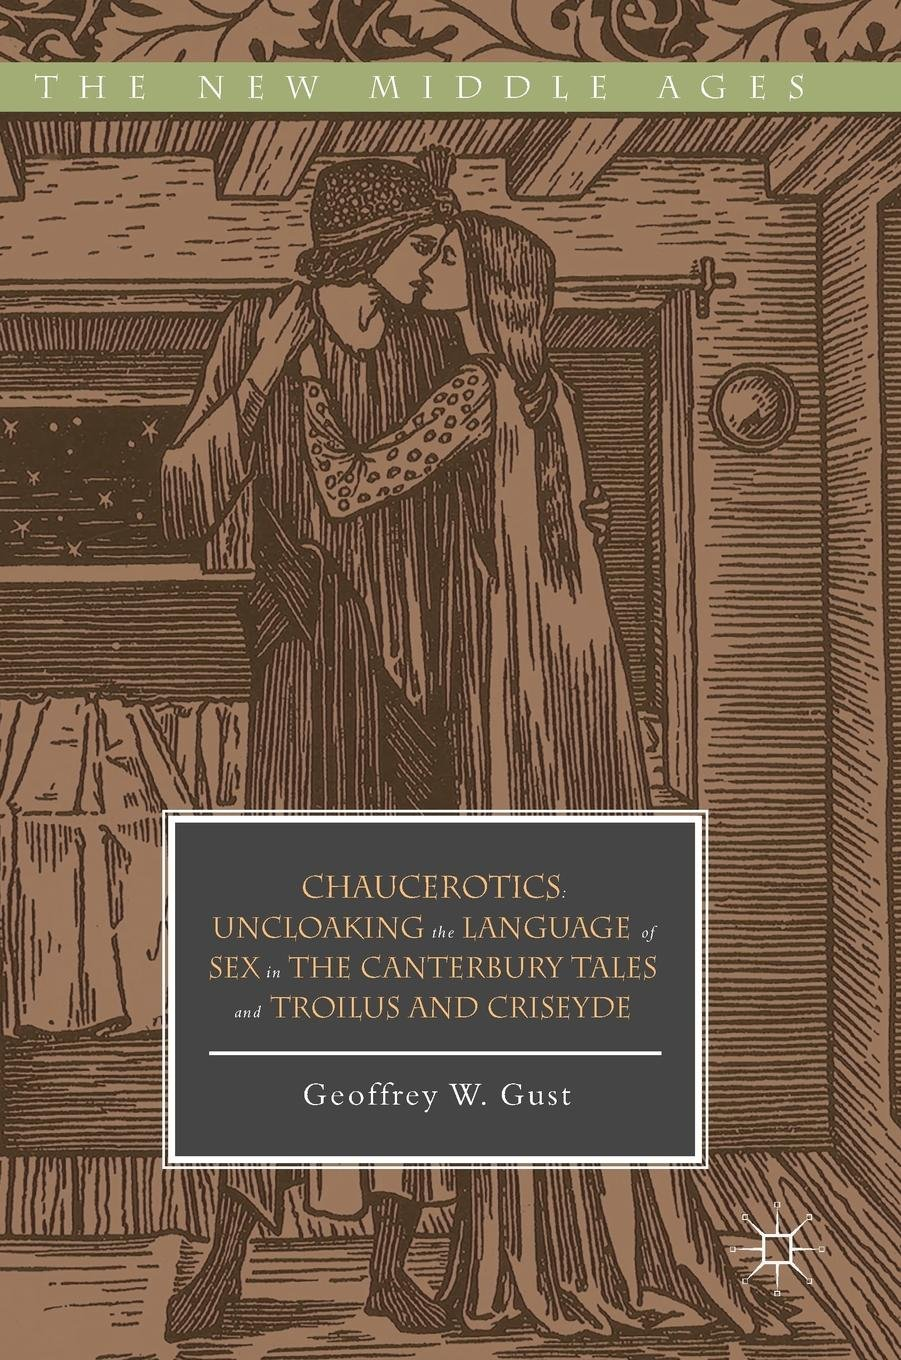 Chaucerotics: Uncloaking the Language of Sex in The Canterbury Tales and Troilus and Criseyde (The New Middle Ages) by Palgrave Macmillan